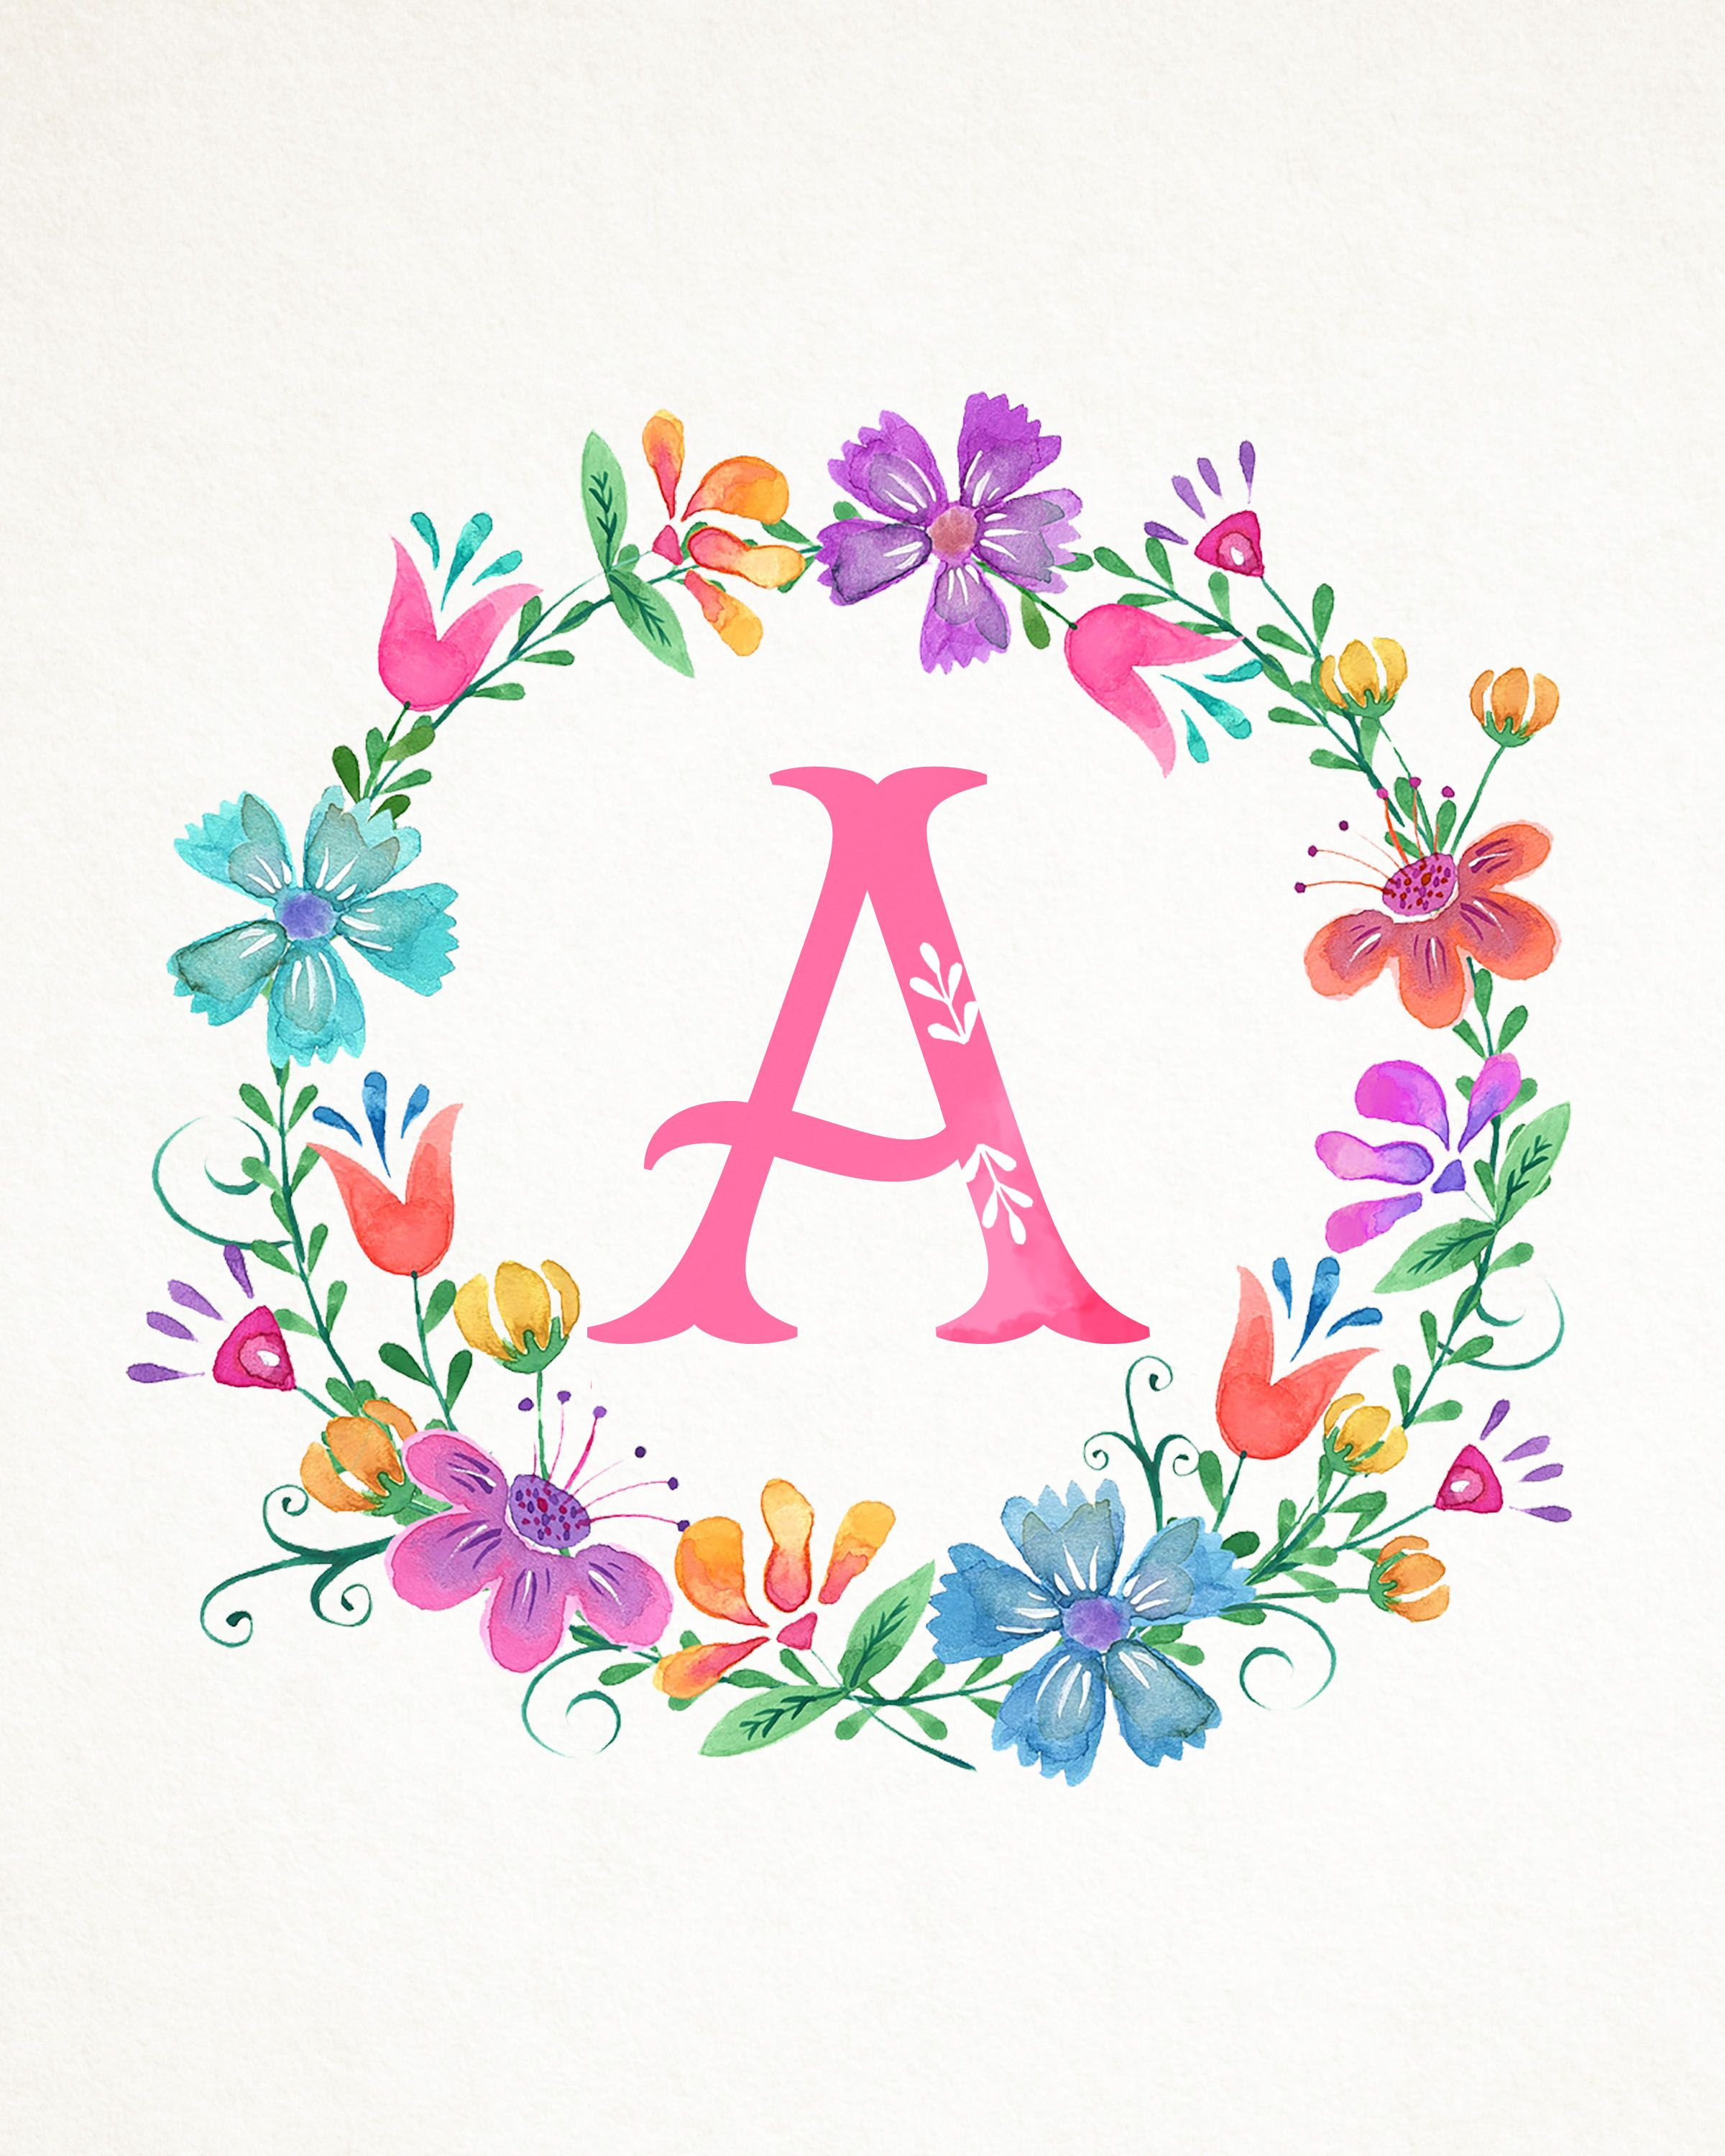 Free Printable Whimsical Watercolor Monograms | Tarjetas Y Etiquetas - Free Printable Flower Letters